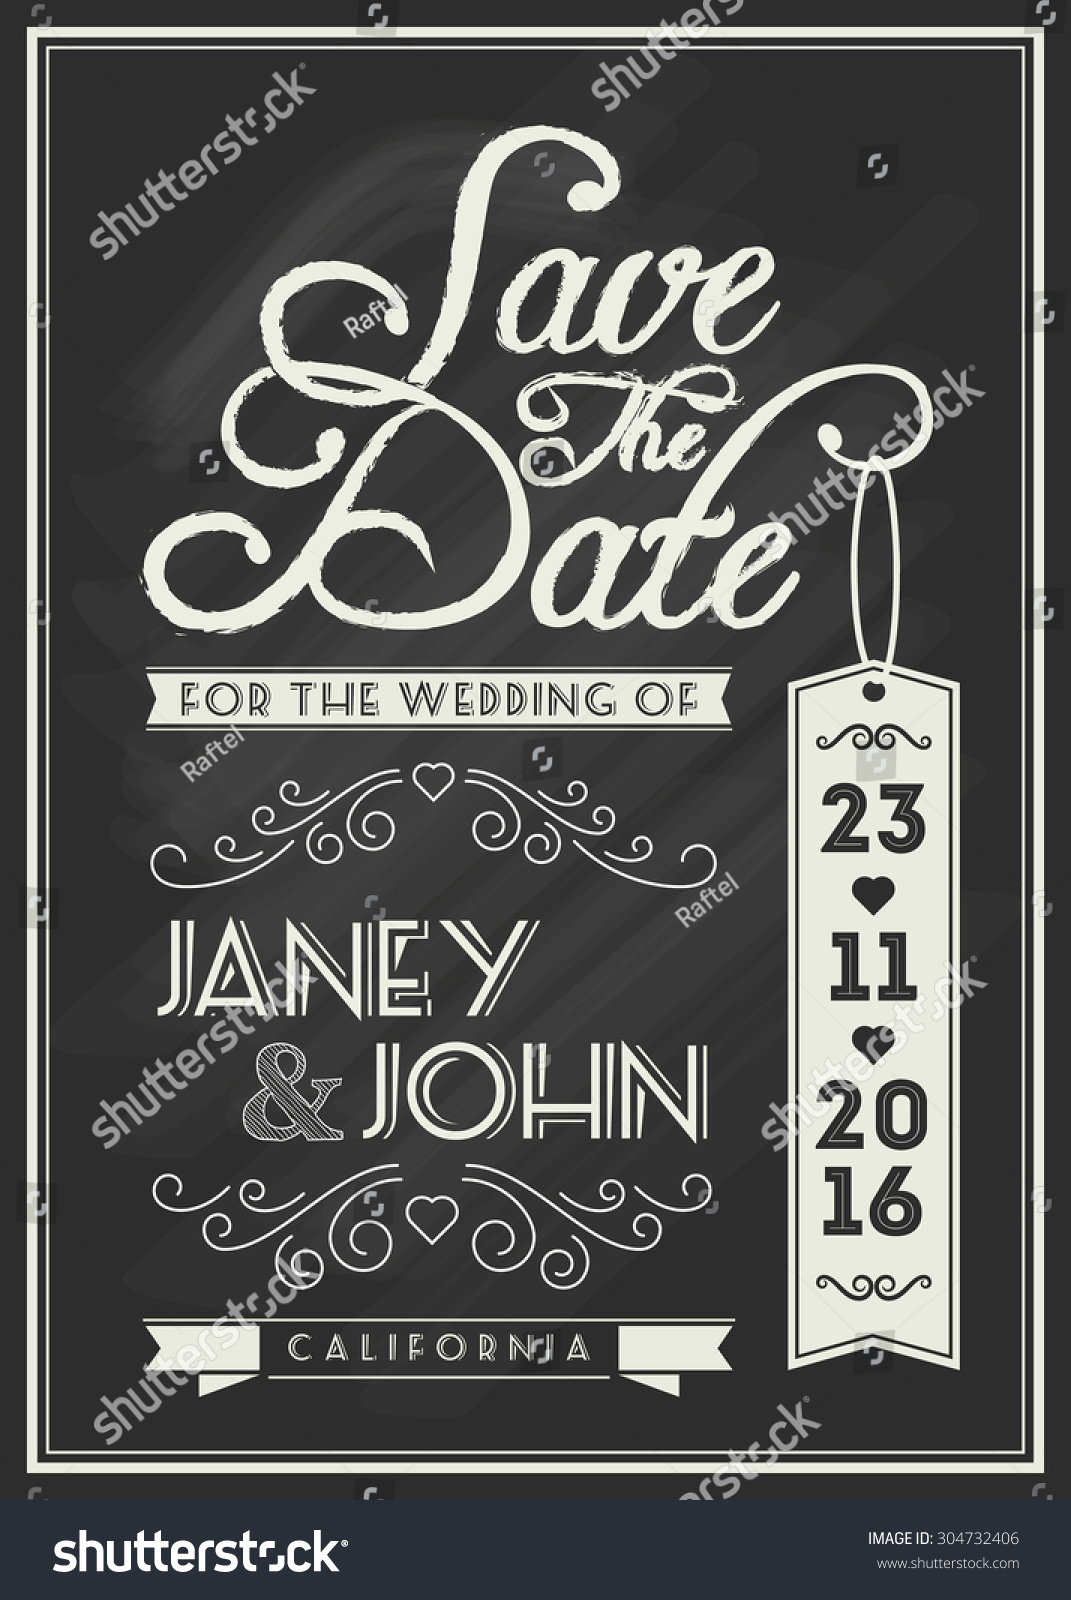 save date card template design typography stock vector royalty free